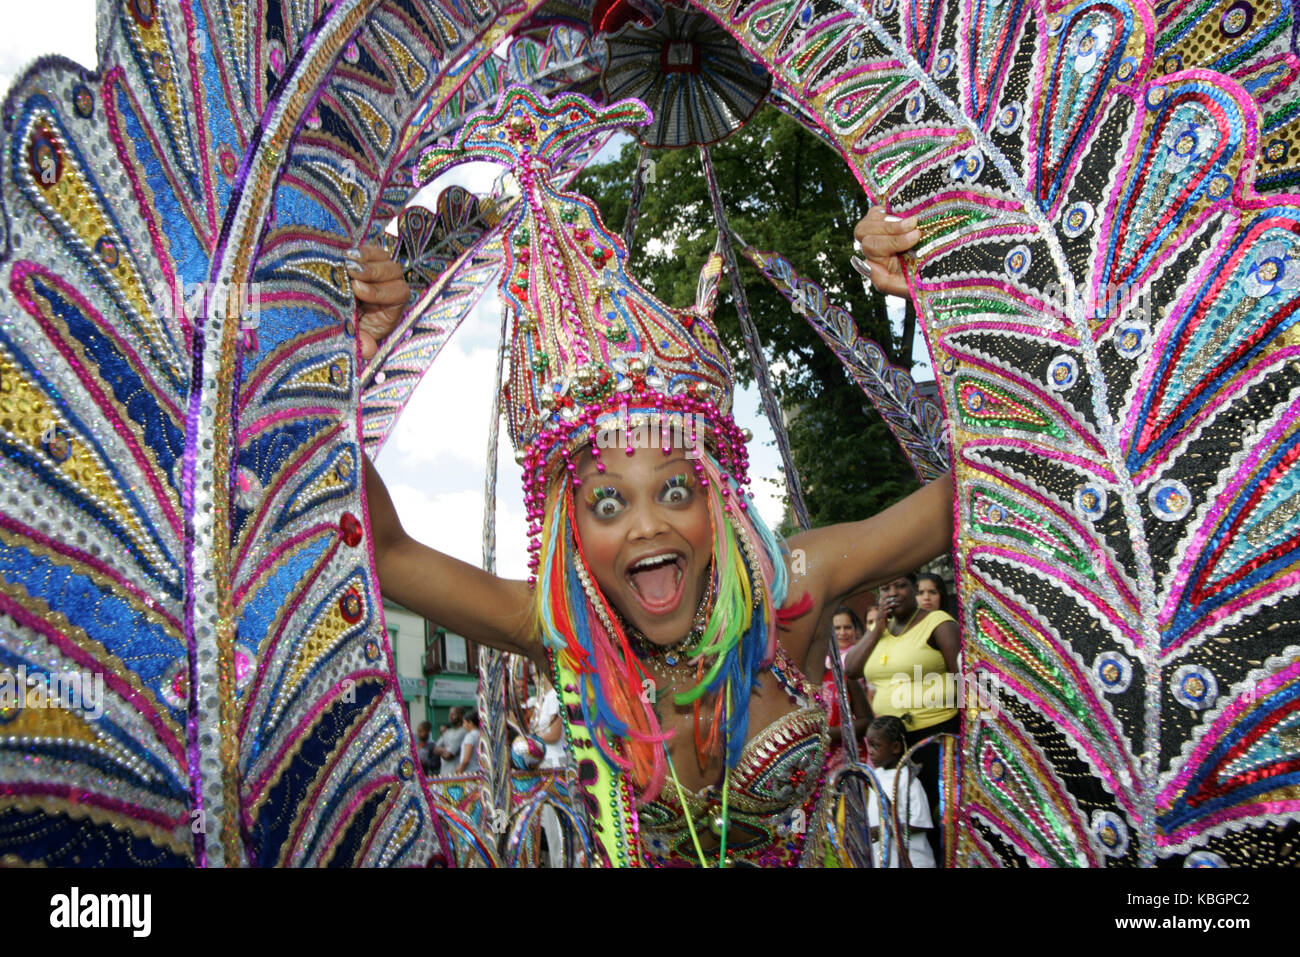 Birmingham Carnival Queen Shantel Ogarro, 7th Aug 2005 Stock Photo